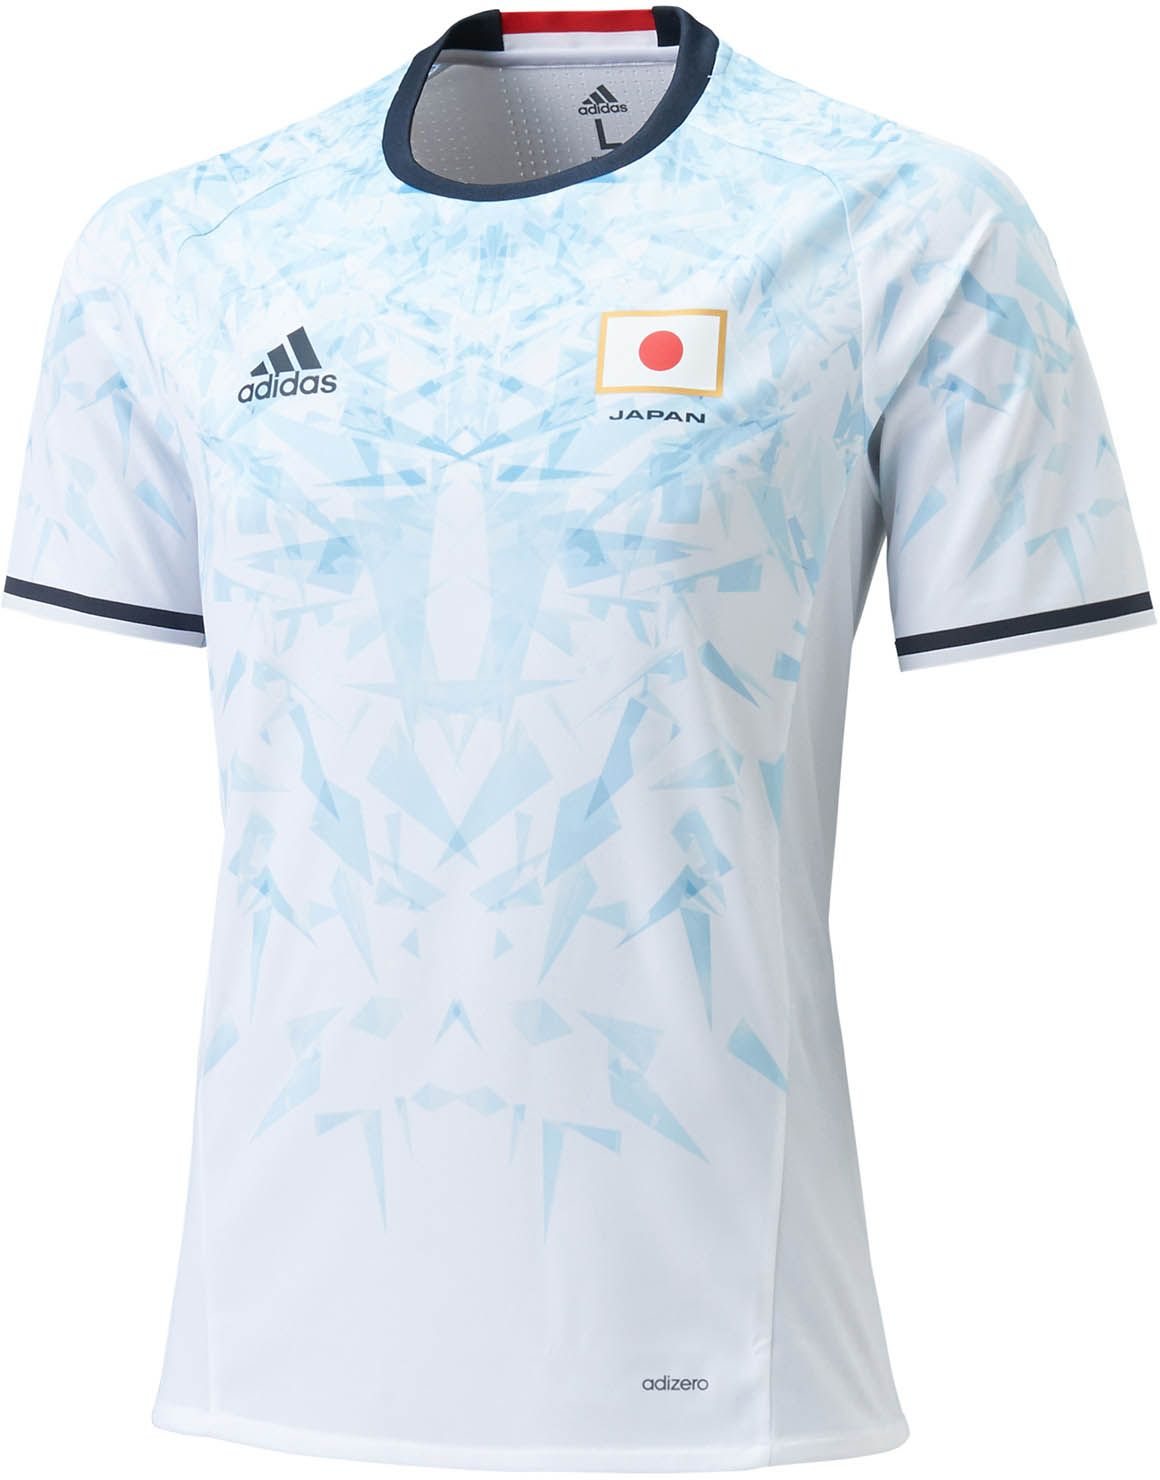 26716116e068a Japan 2016 Olympics Home and Away Kits Released - Footy Headlines ...